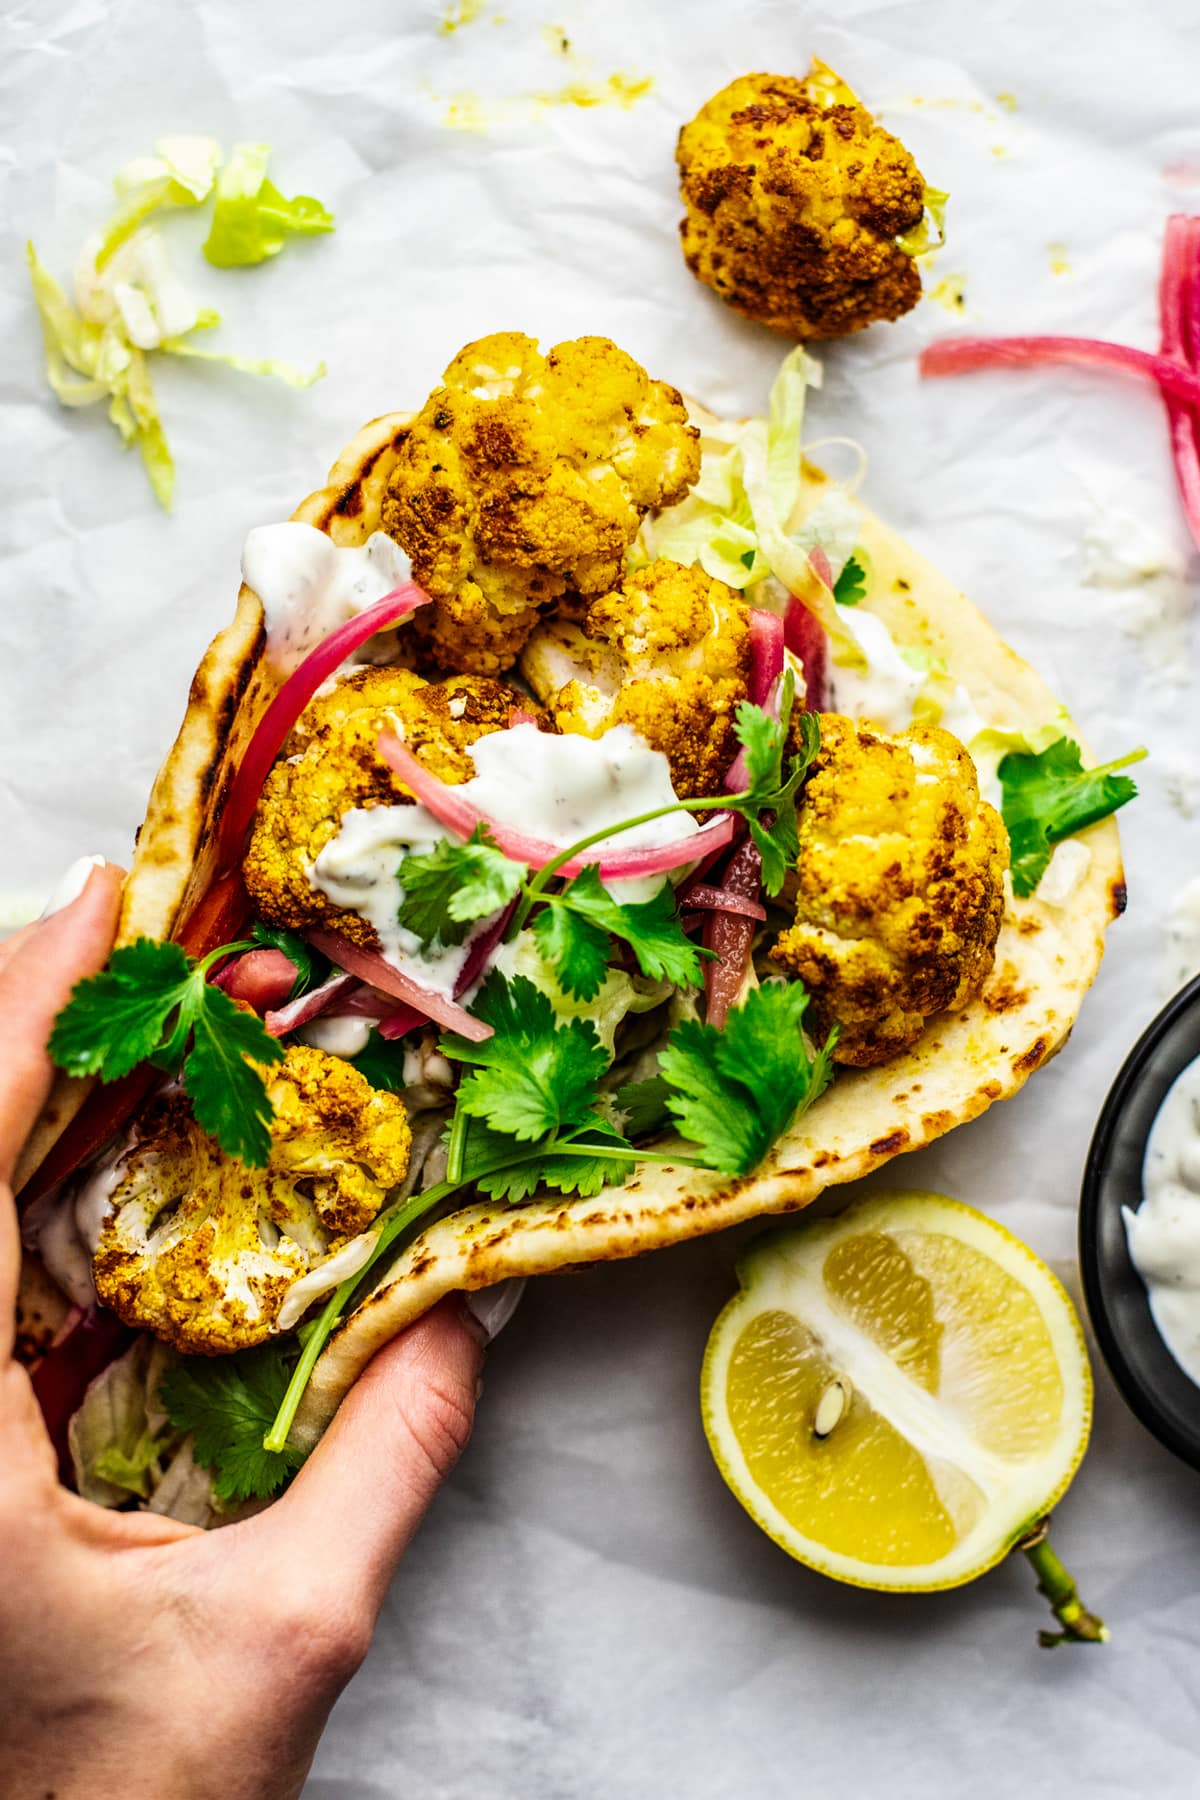 hand holding naan cauliflower shawarma wrap won white parchment paper with condiments arranged around it.